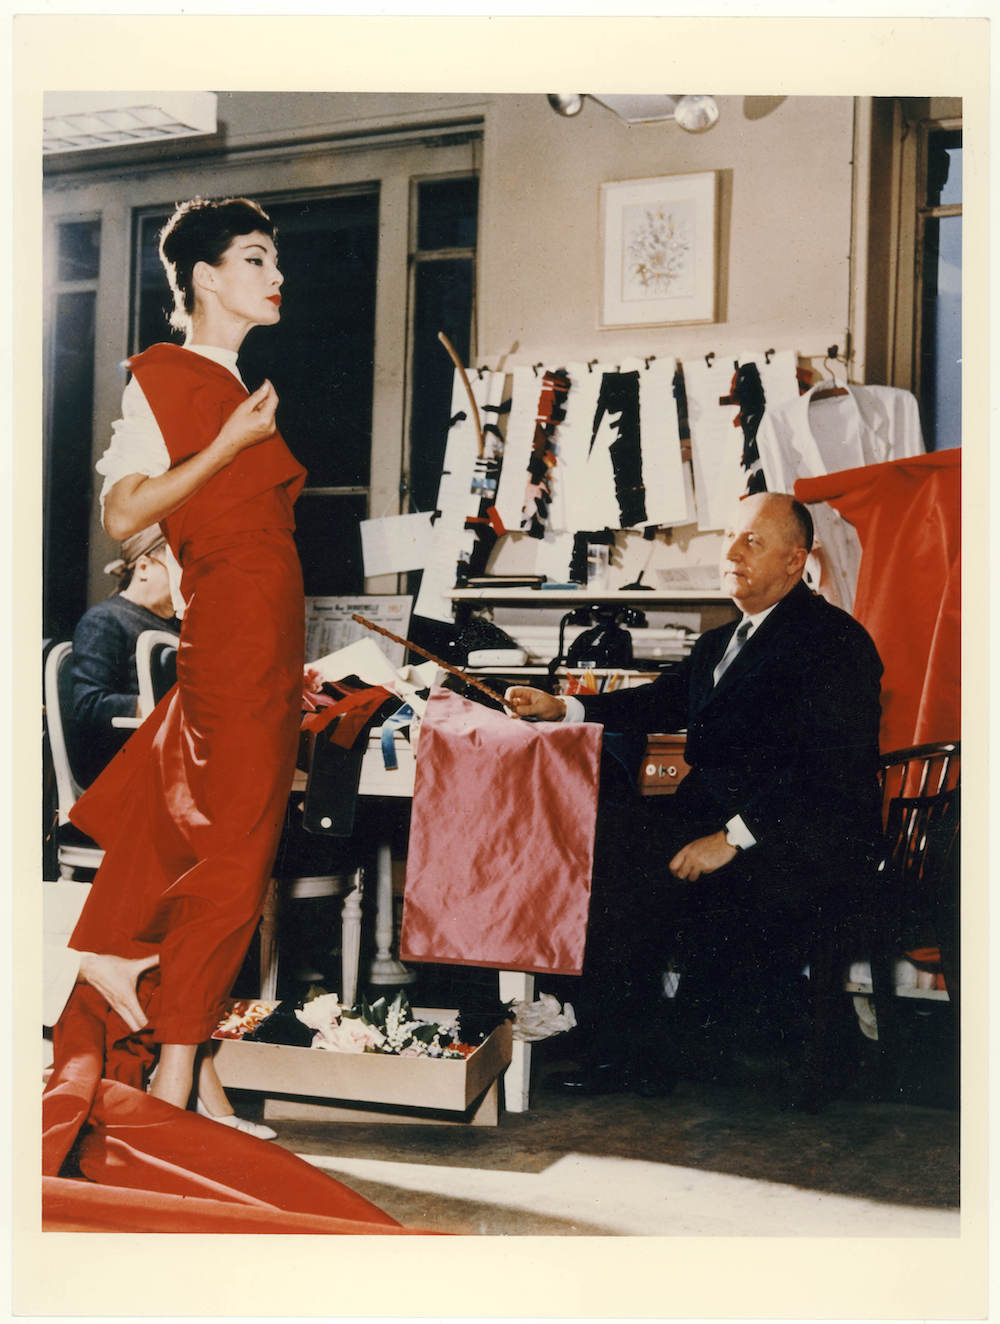 Christian Dior with model Lucky, circa 1955. Courtesy of Christian Dior